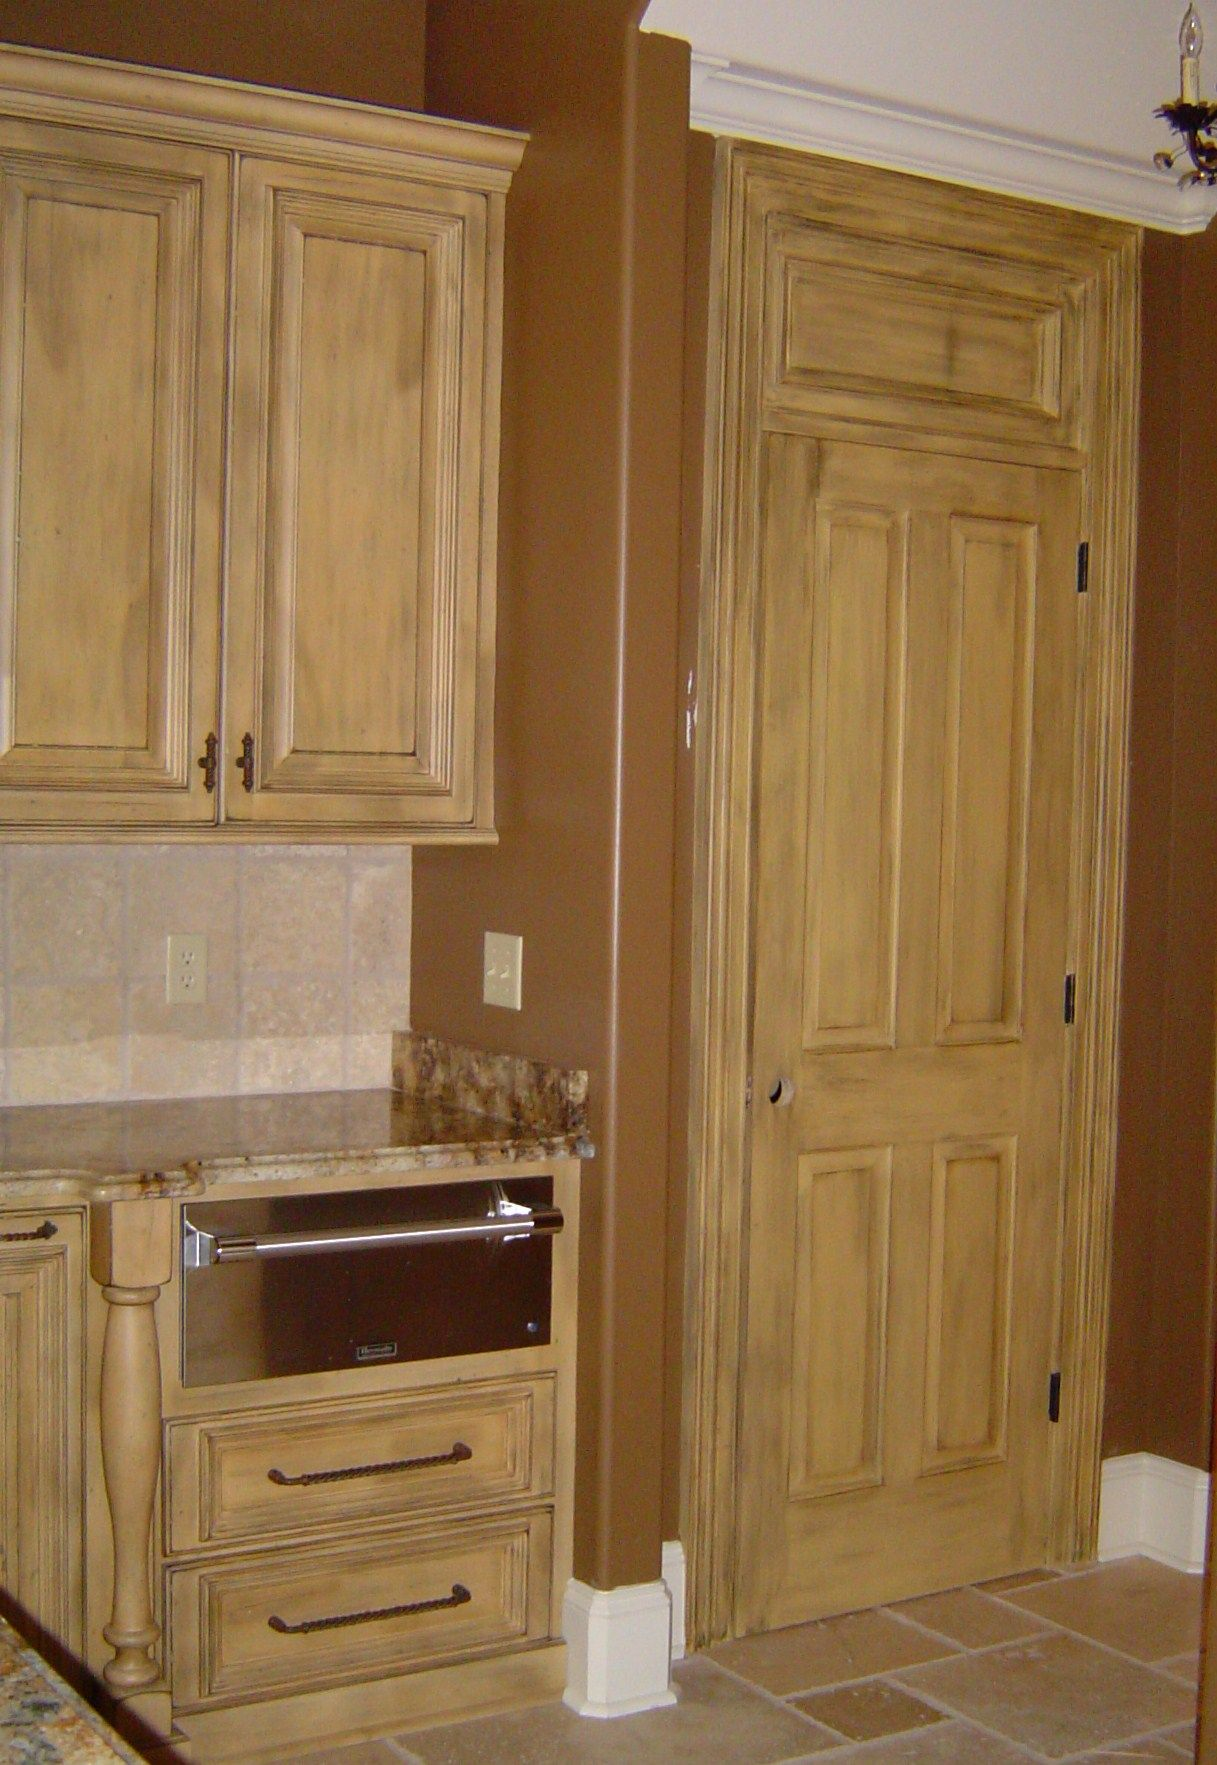 Pantry Door Finished To Match Kitchen Cabinets Furniture Home Kitchen Cabinets